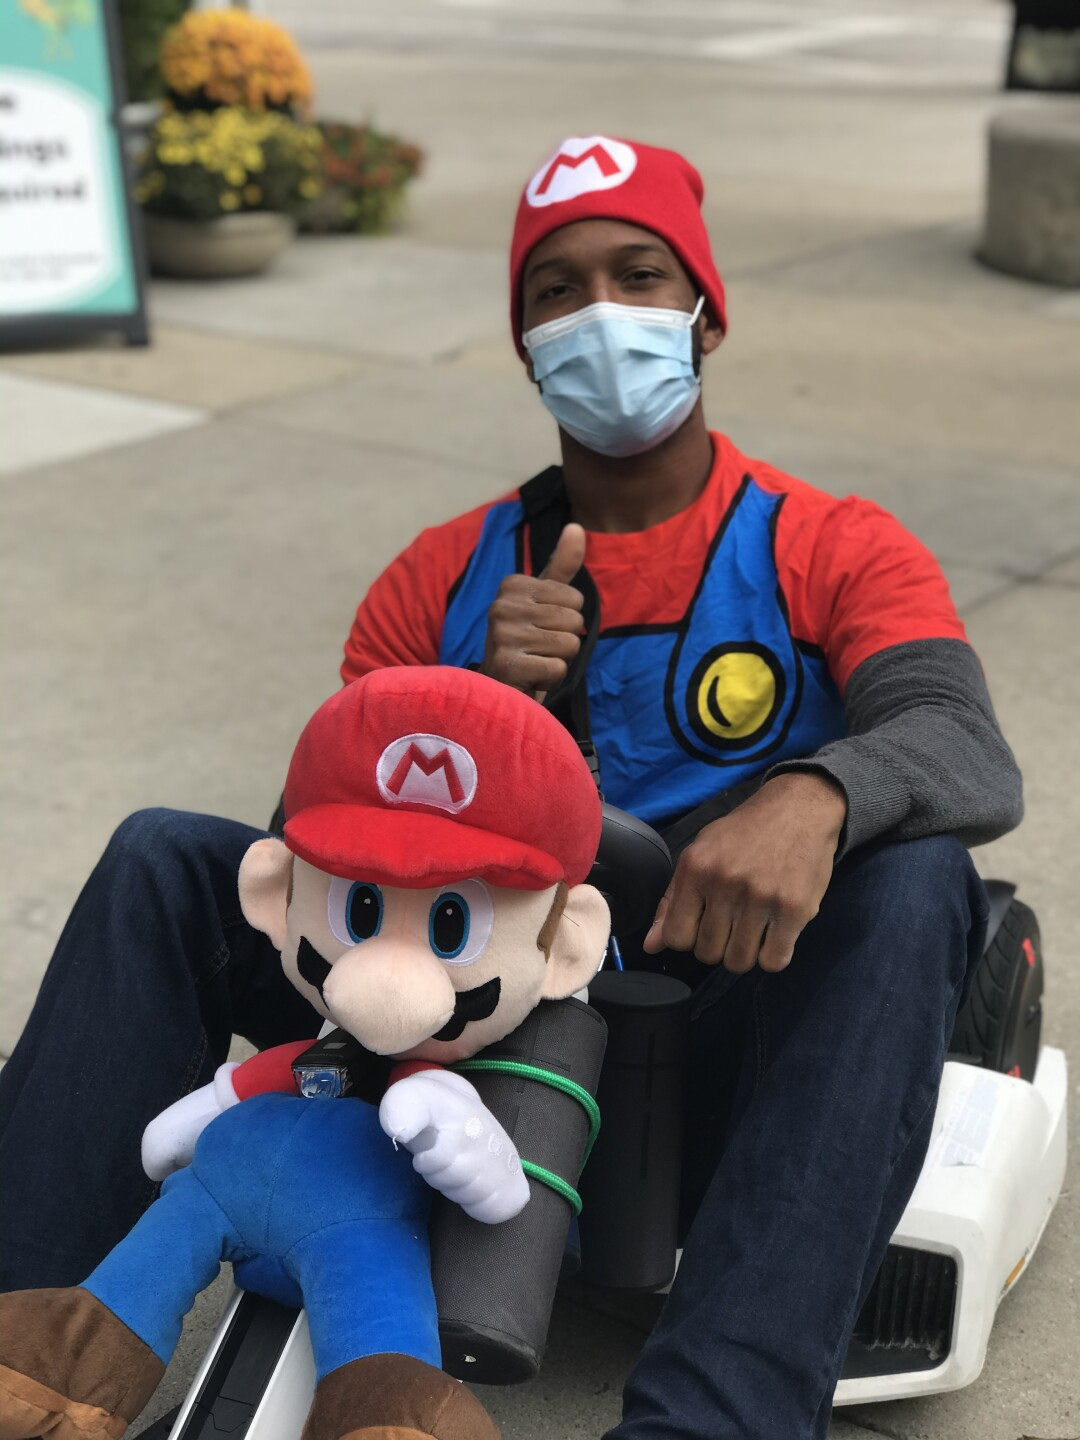 Milwaukee Mario a.k.a Josh Schaffer never had an intention of becoming this larger than live character, but it is one he happily embraces.